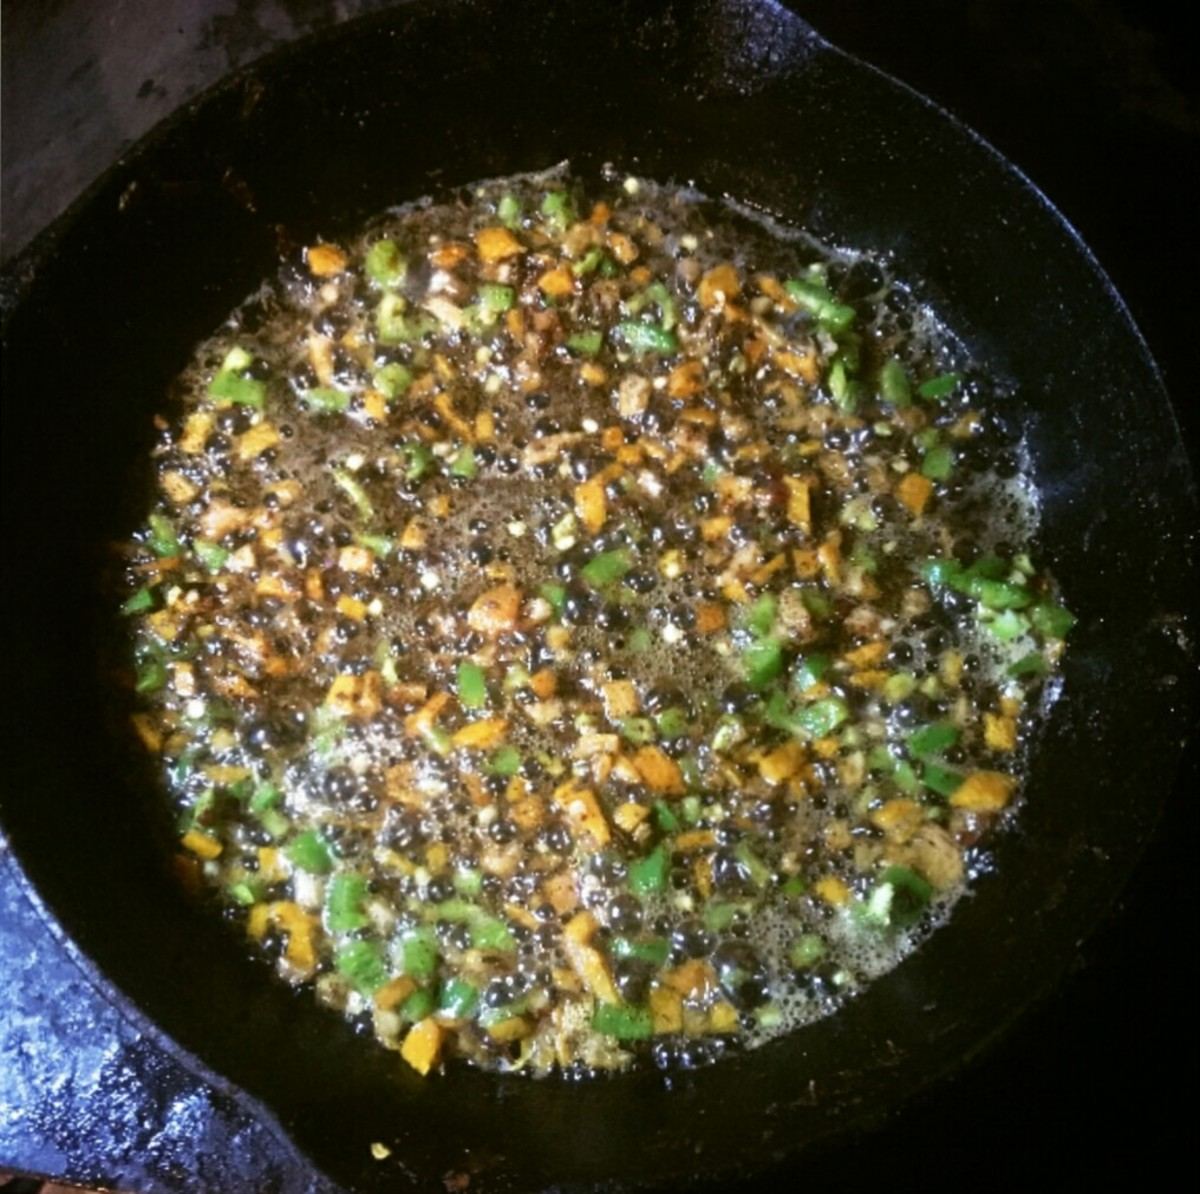 The spices, orange, and peppers simmer briefly by themselves in butter. The heat must be low, or they will burn. A minute or two of cooking is enough; you only want to blend flavors.